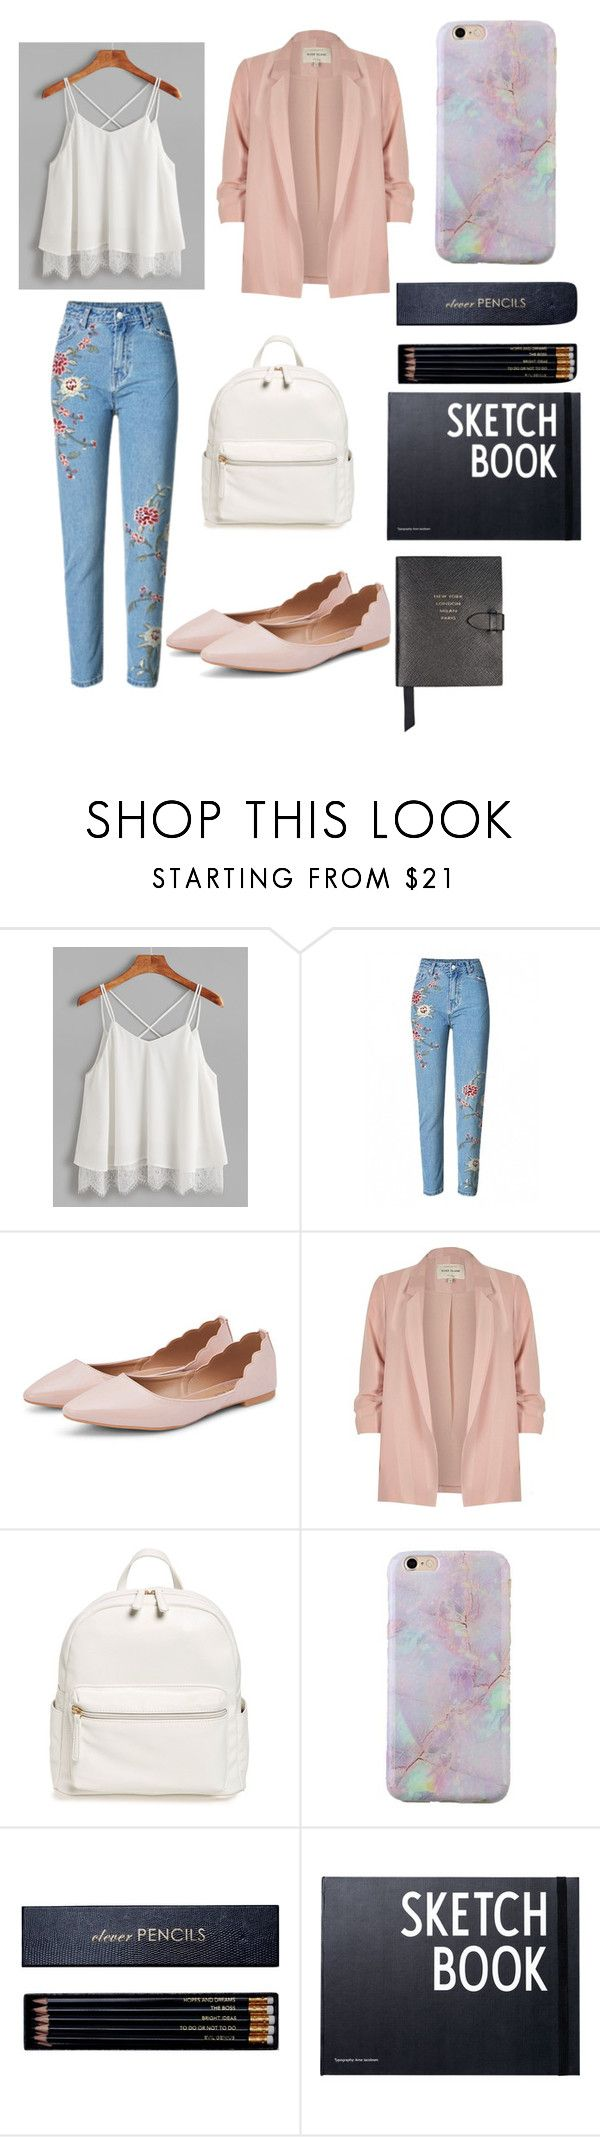 """Girly"" by butterfly-18 on Polyvore featuring River Island, BP., Sloane Stationery, Design Letters and Smythson"